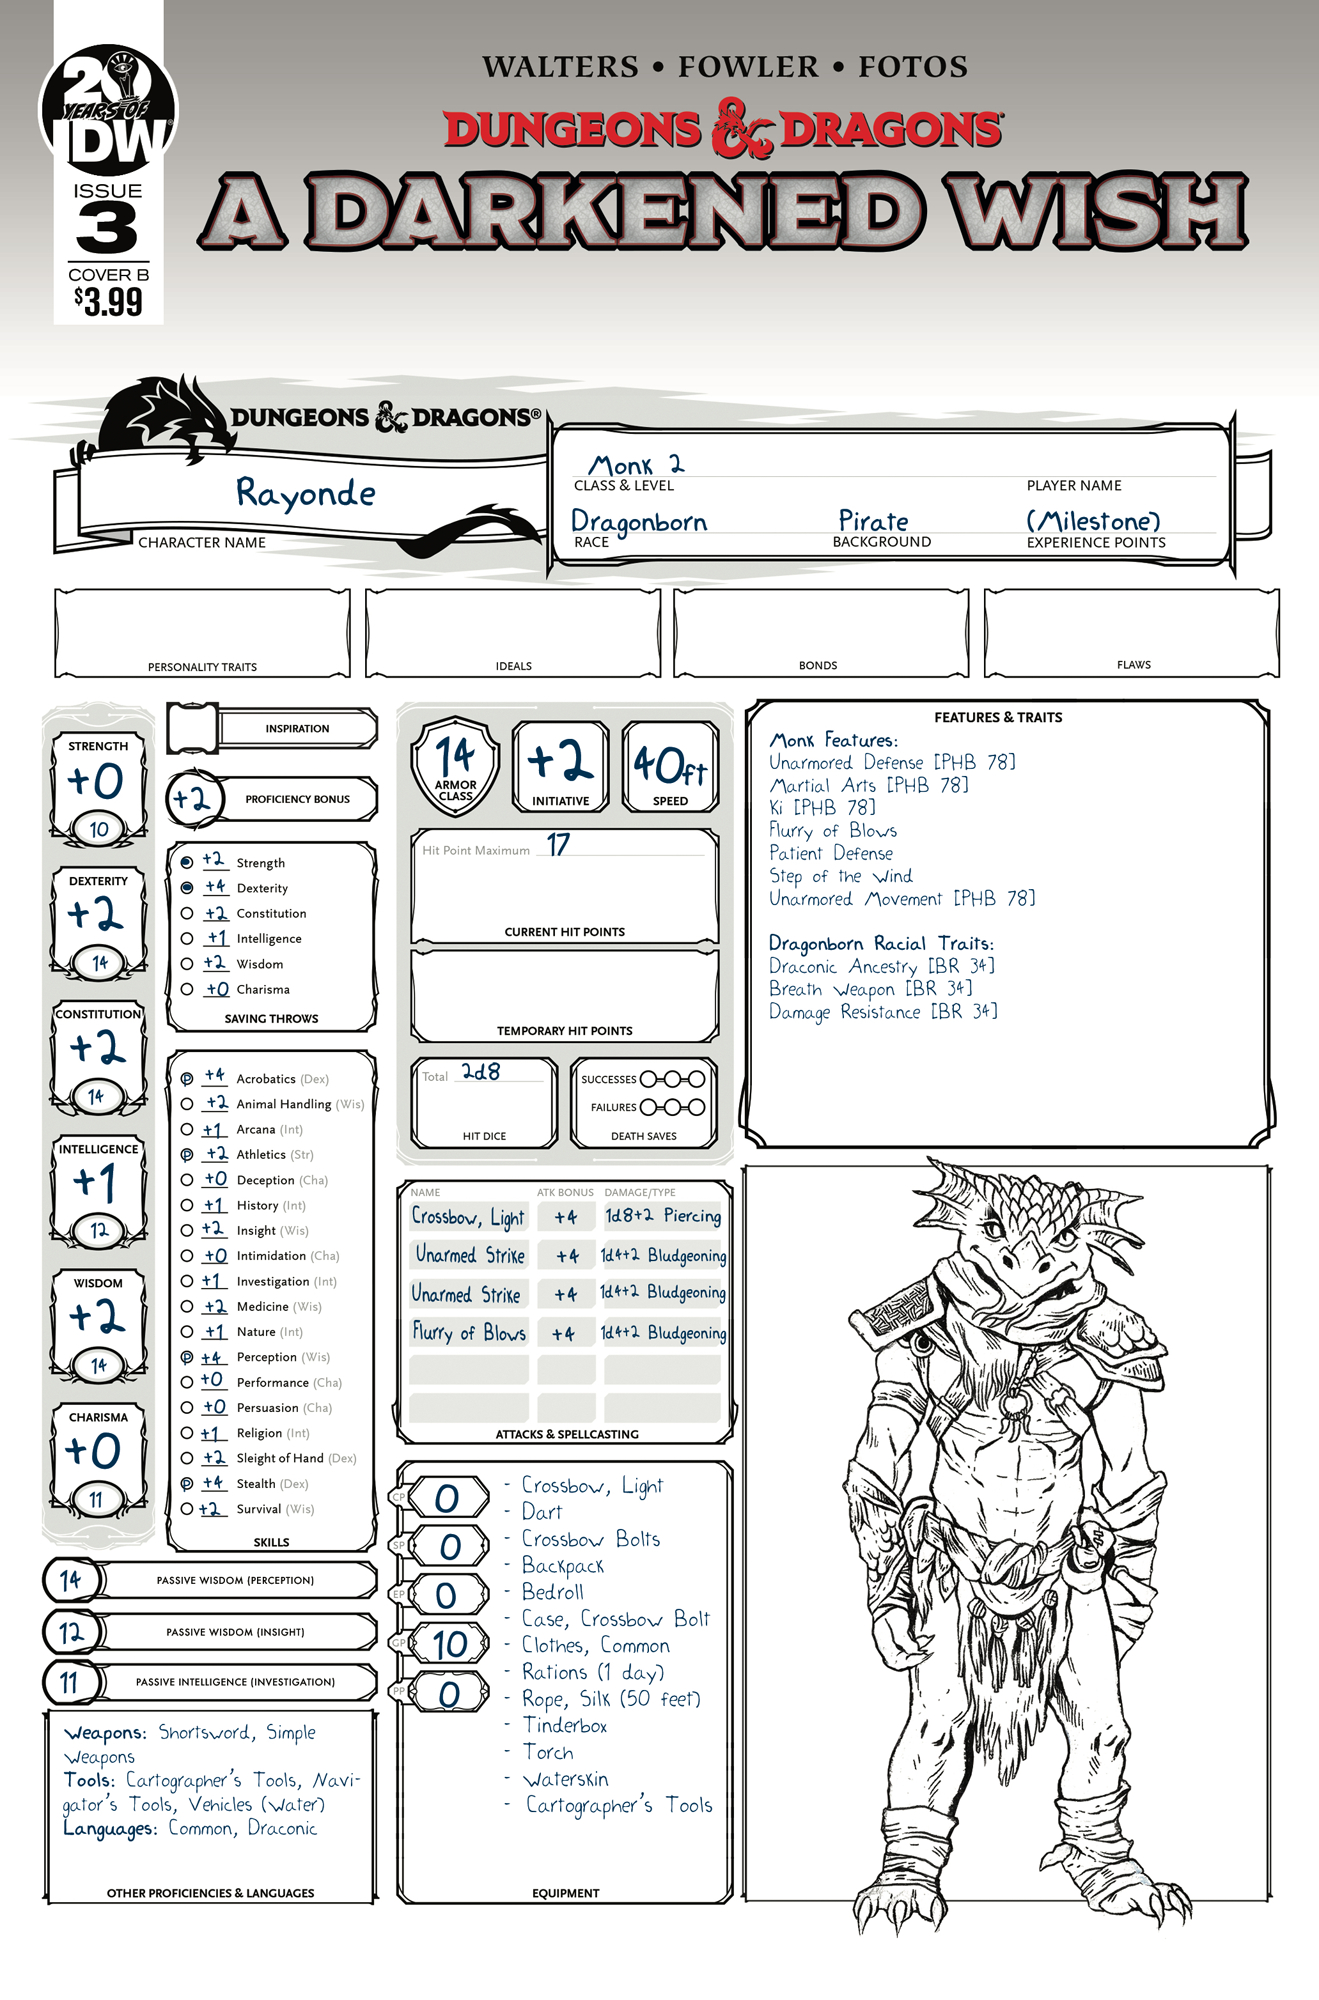 DUNGEONS & DRAGONS A DARKENED WISH #3 CVR B CHARACTER SHEET